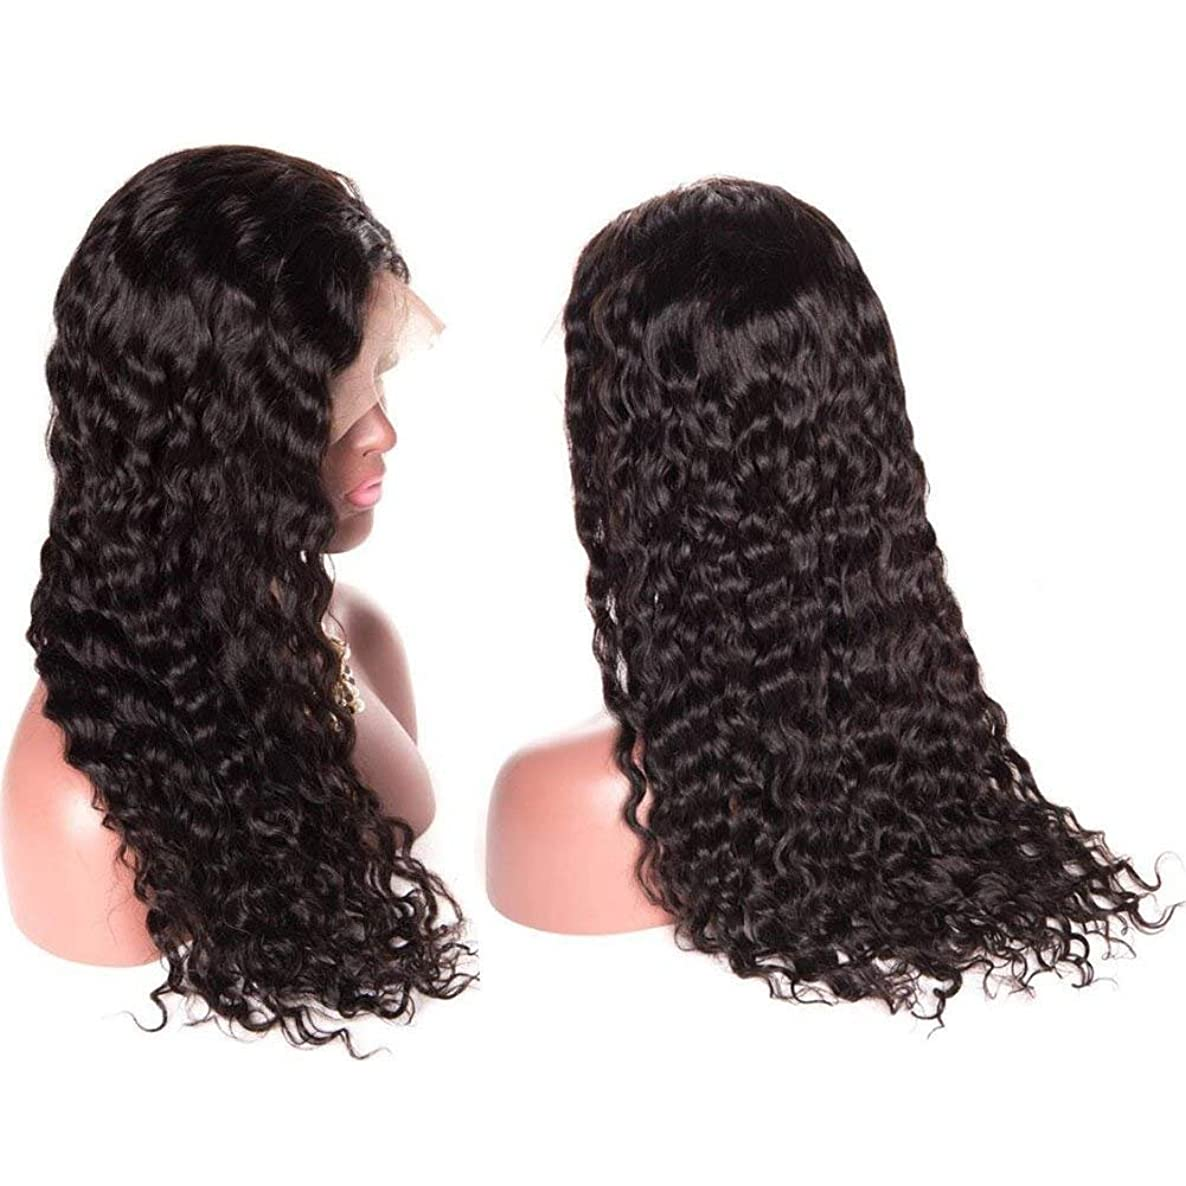 Brazilian Water Wave Lace Front Wigs 18 inch for Black Women 130% Density 100% Unprocessed Virgin Human Hair Wig Natural with Baby Hair